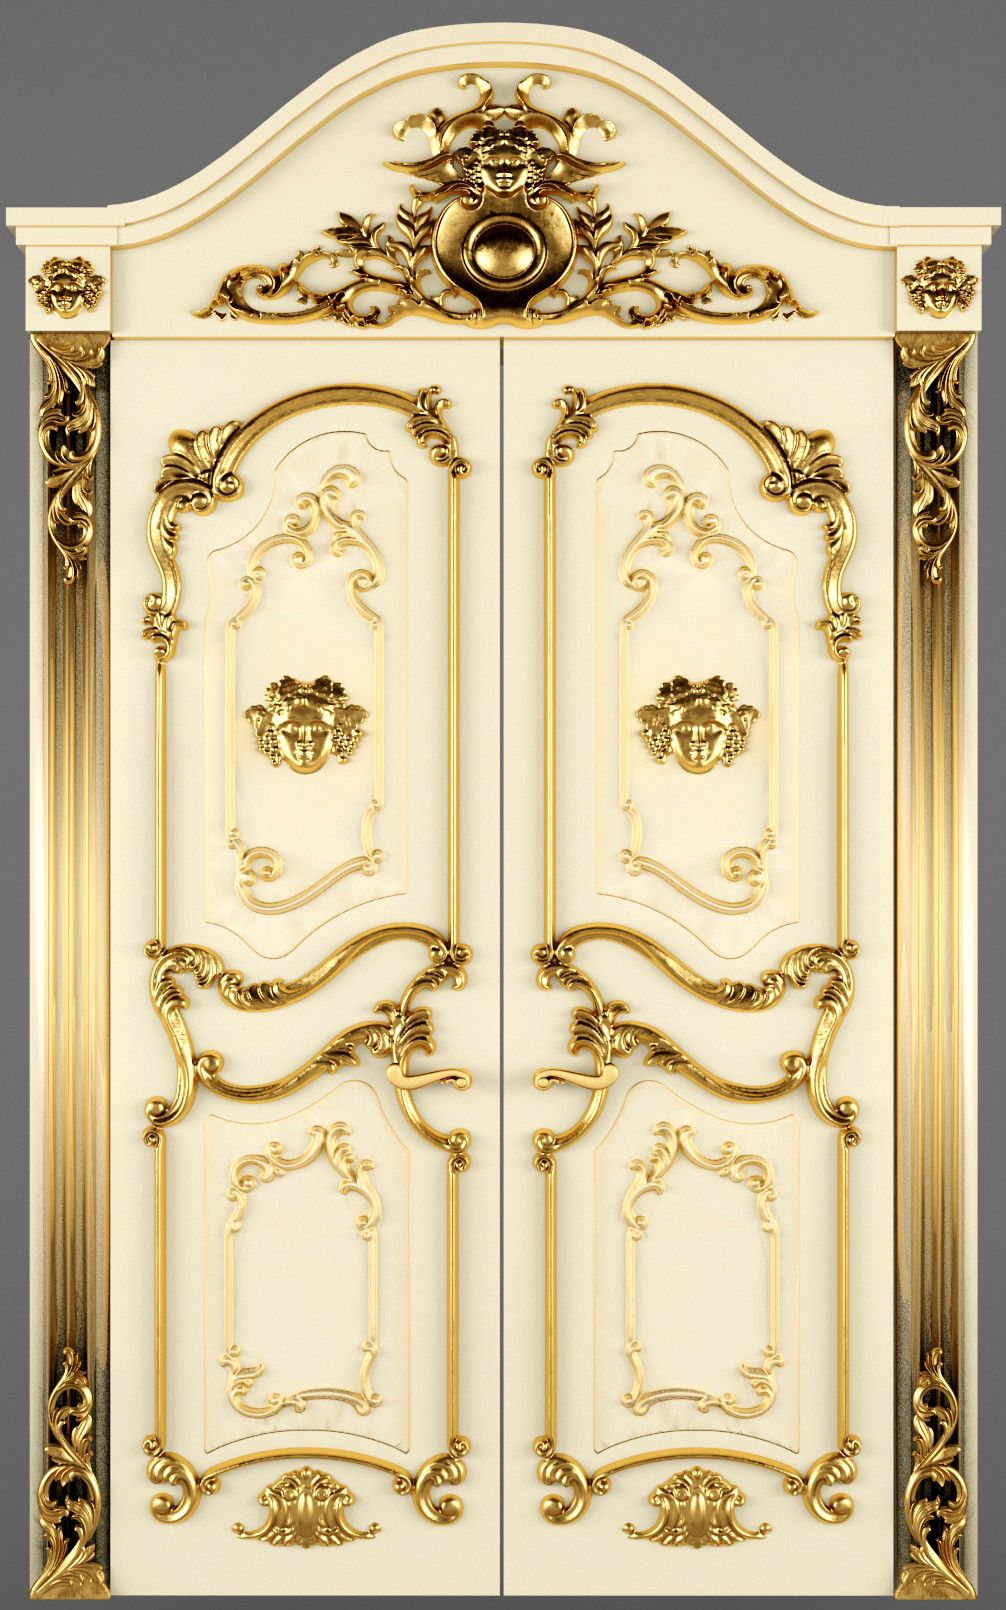 Neo baroque furniture by paolo lucchetta modern furniture design - Luxury Classic Baroque Carved Door Model Available On Turbo Squid The World S Leading Provider Of Digital Models For Visualization Films Television